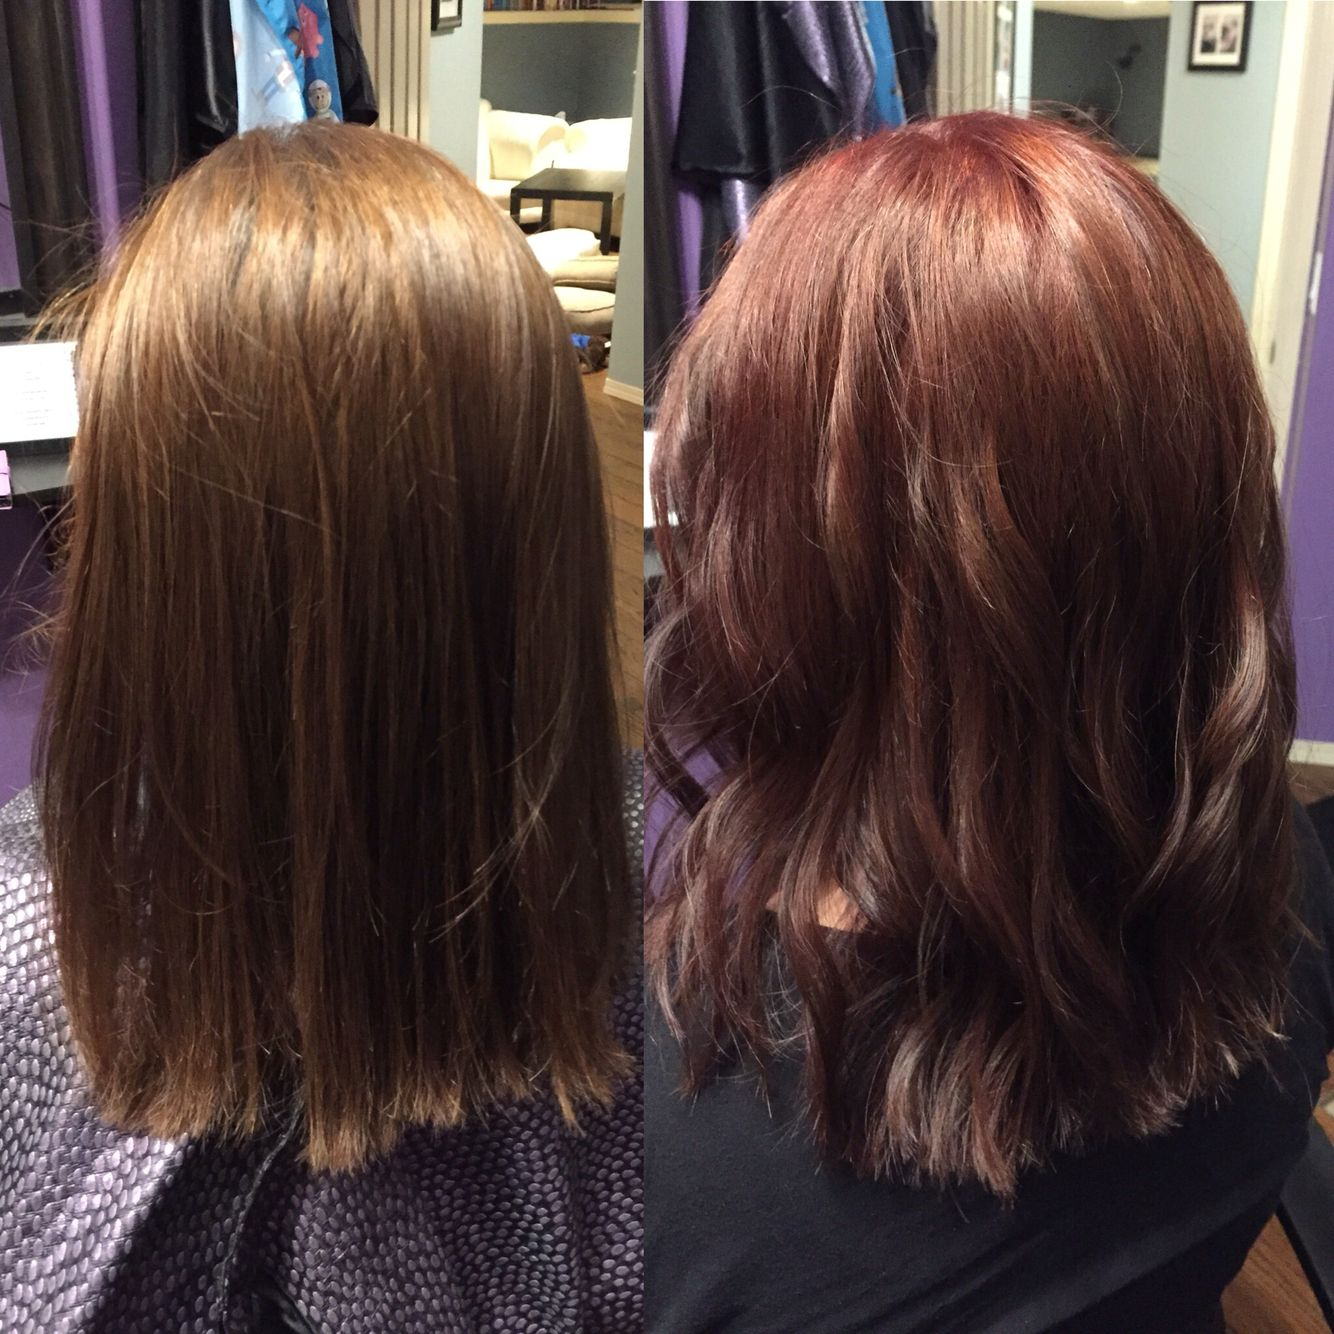 Wella Love 7 45 With 0 45 Beautiful Red And A Hint Of Brown 6 75 Coiffure